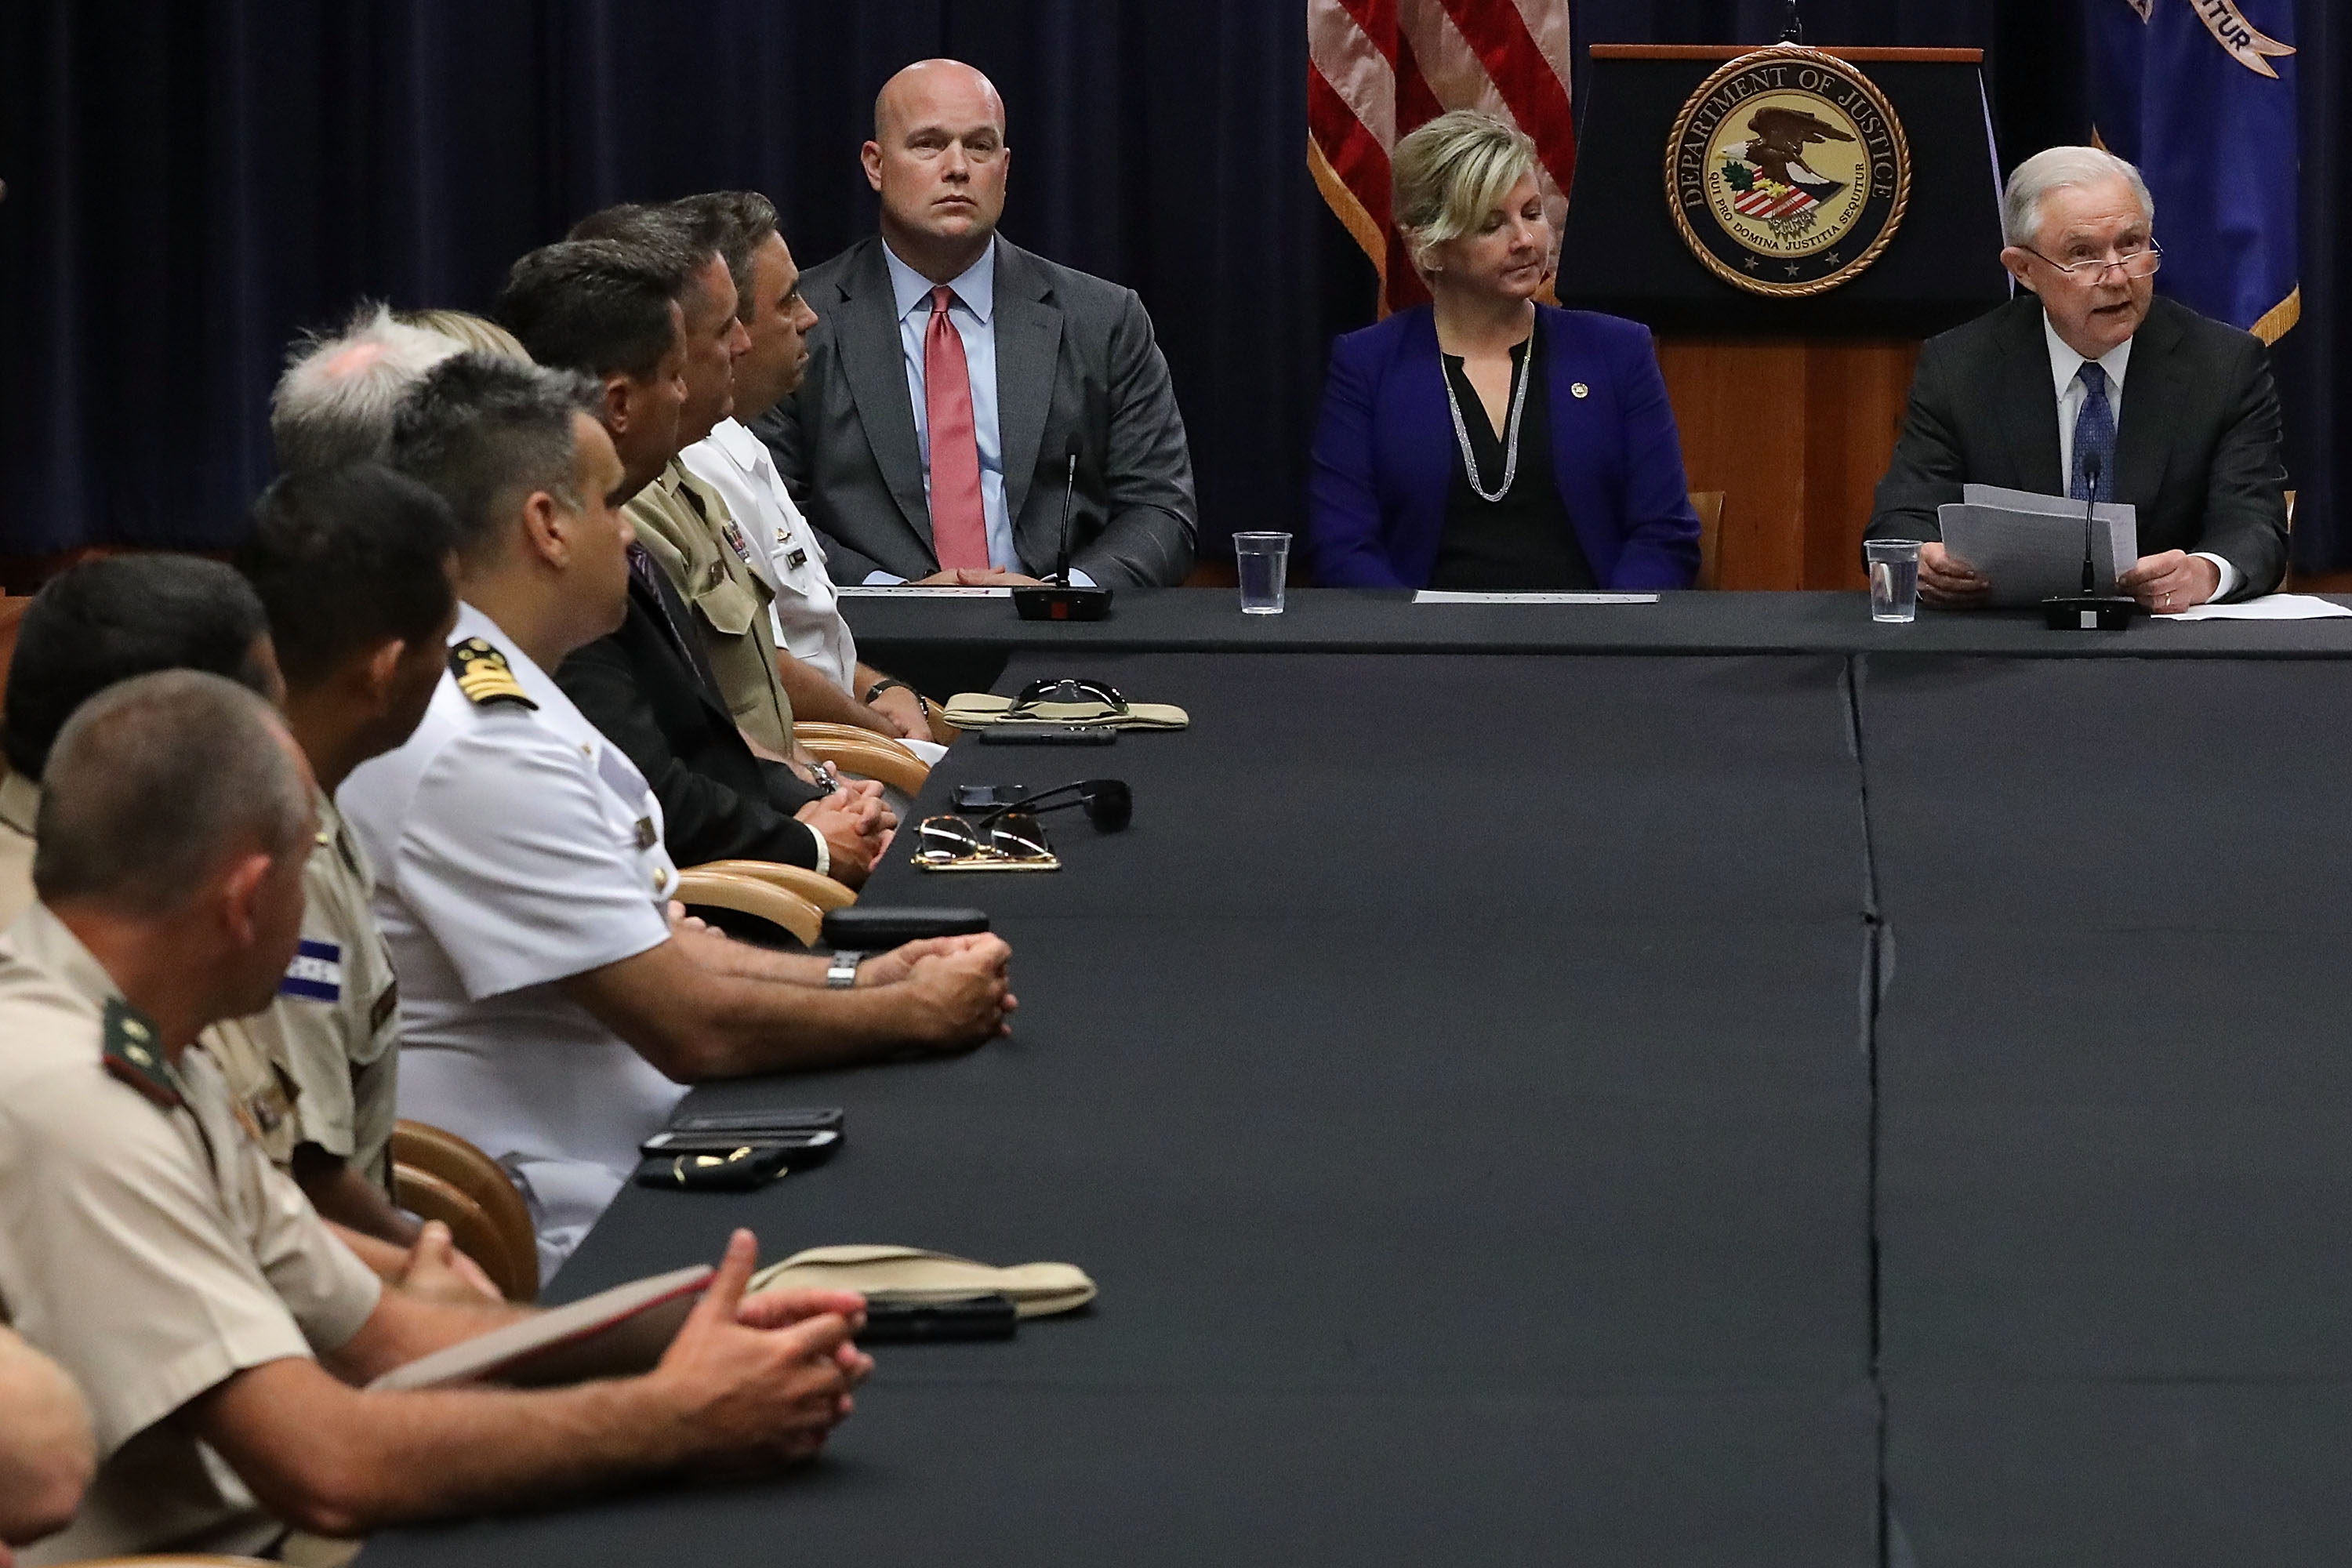 (L-R) Department of Justice Chief of Staff Matt Whitaker, the FBI's Kristi Johnson and U.S. Attorney General Jeff Sessions participate in a round table event with the Joint Interagency Task Force - South (JIATF-S) foreign liaison officers and at the Department of Justice Kennedy building August 29, 2018 in Washington, DC. (Chip Somodevilla/Getty Images)